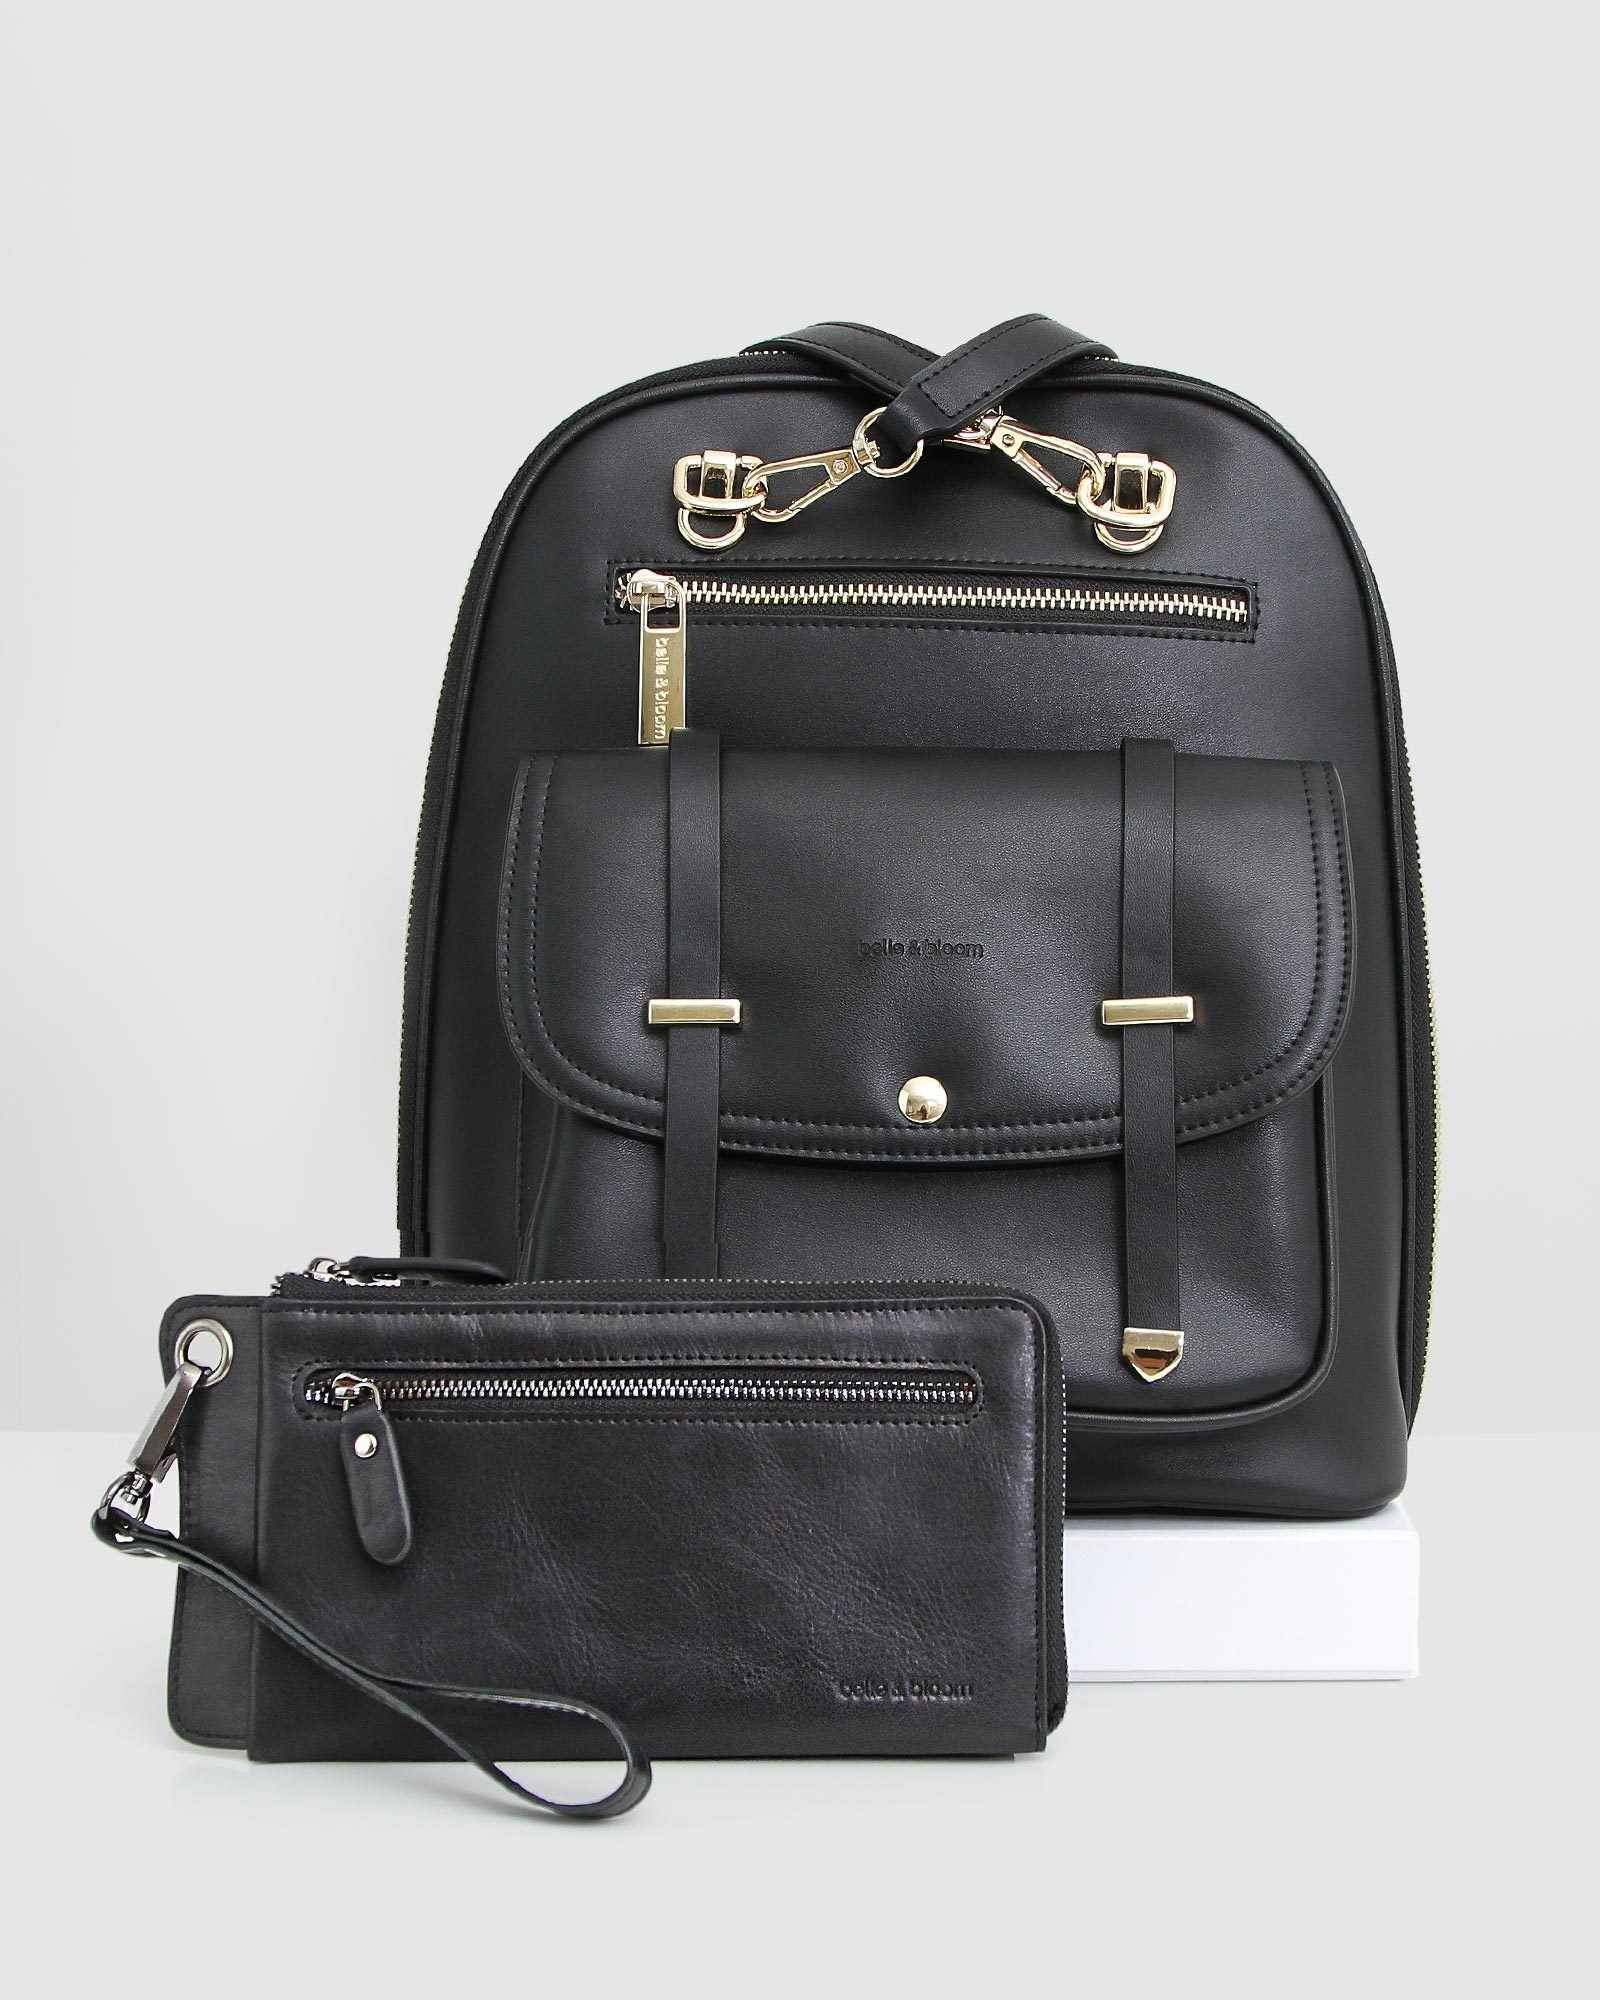 Backpack & Wallet Gift Pack - Black